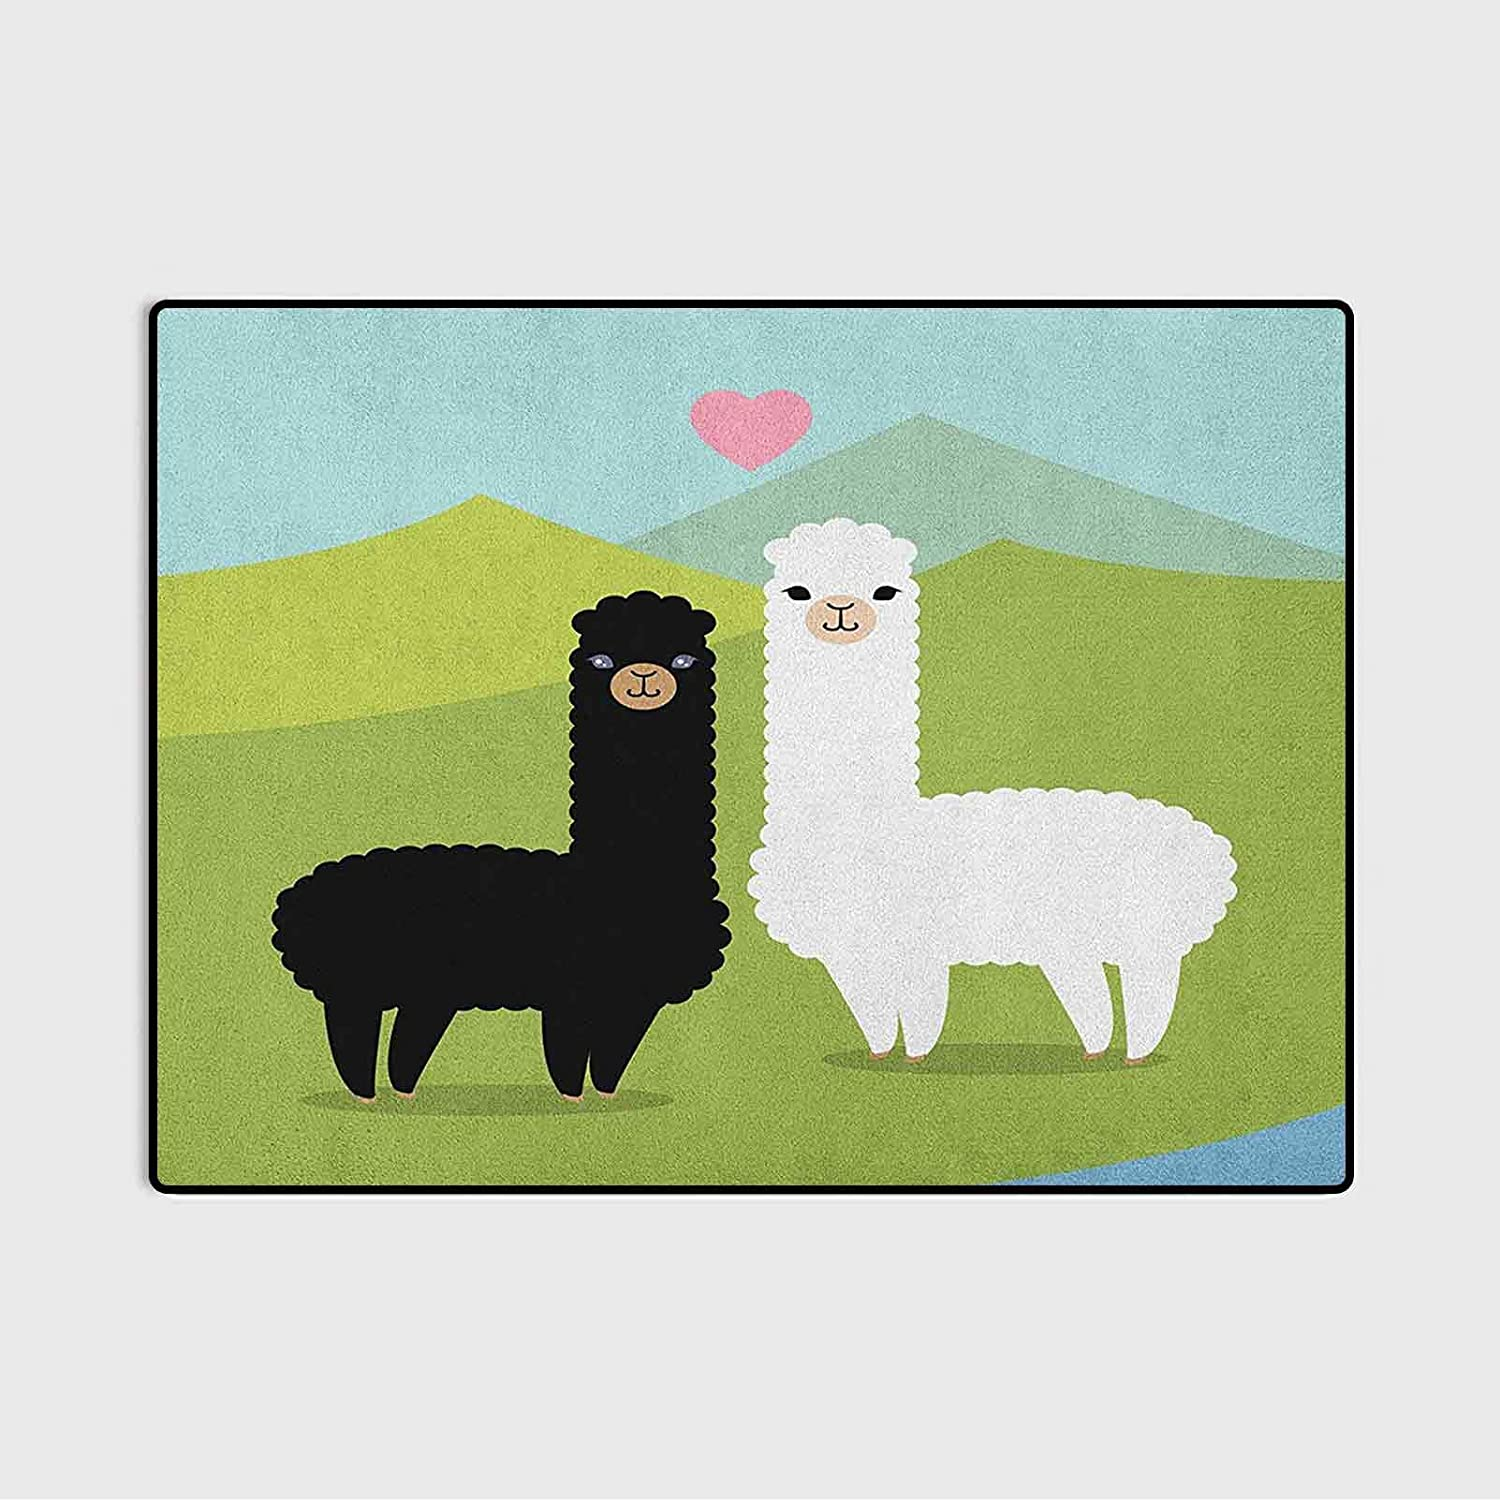 Llama Bath Rugs and mats Kitchen Rug in Alpacas Love Set sold Free shipping on posting reviews out The